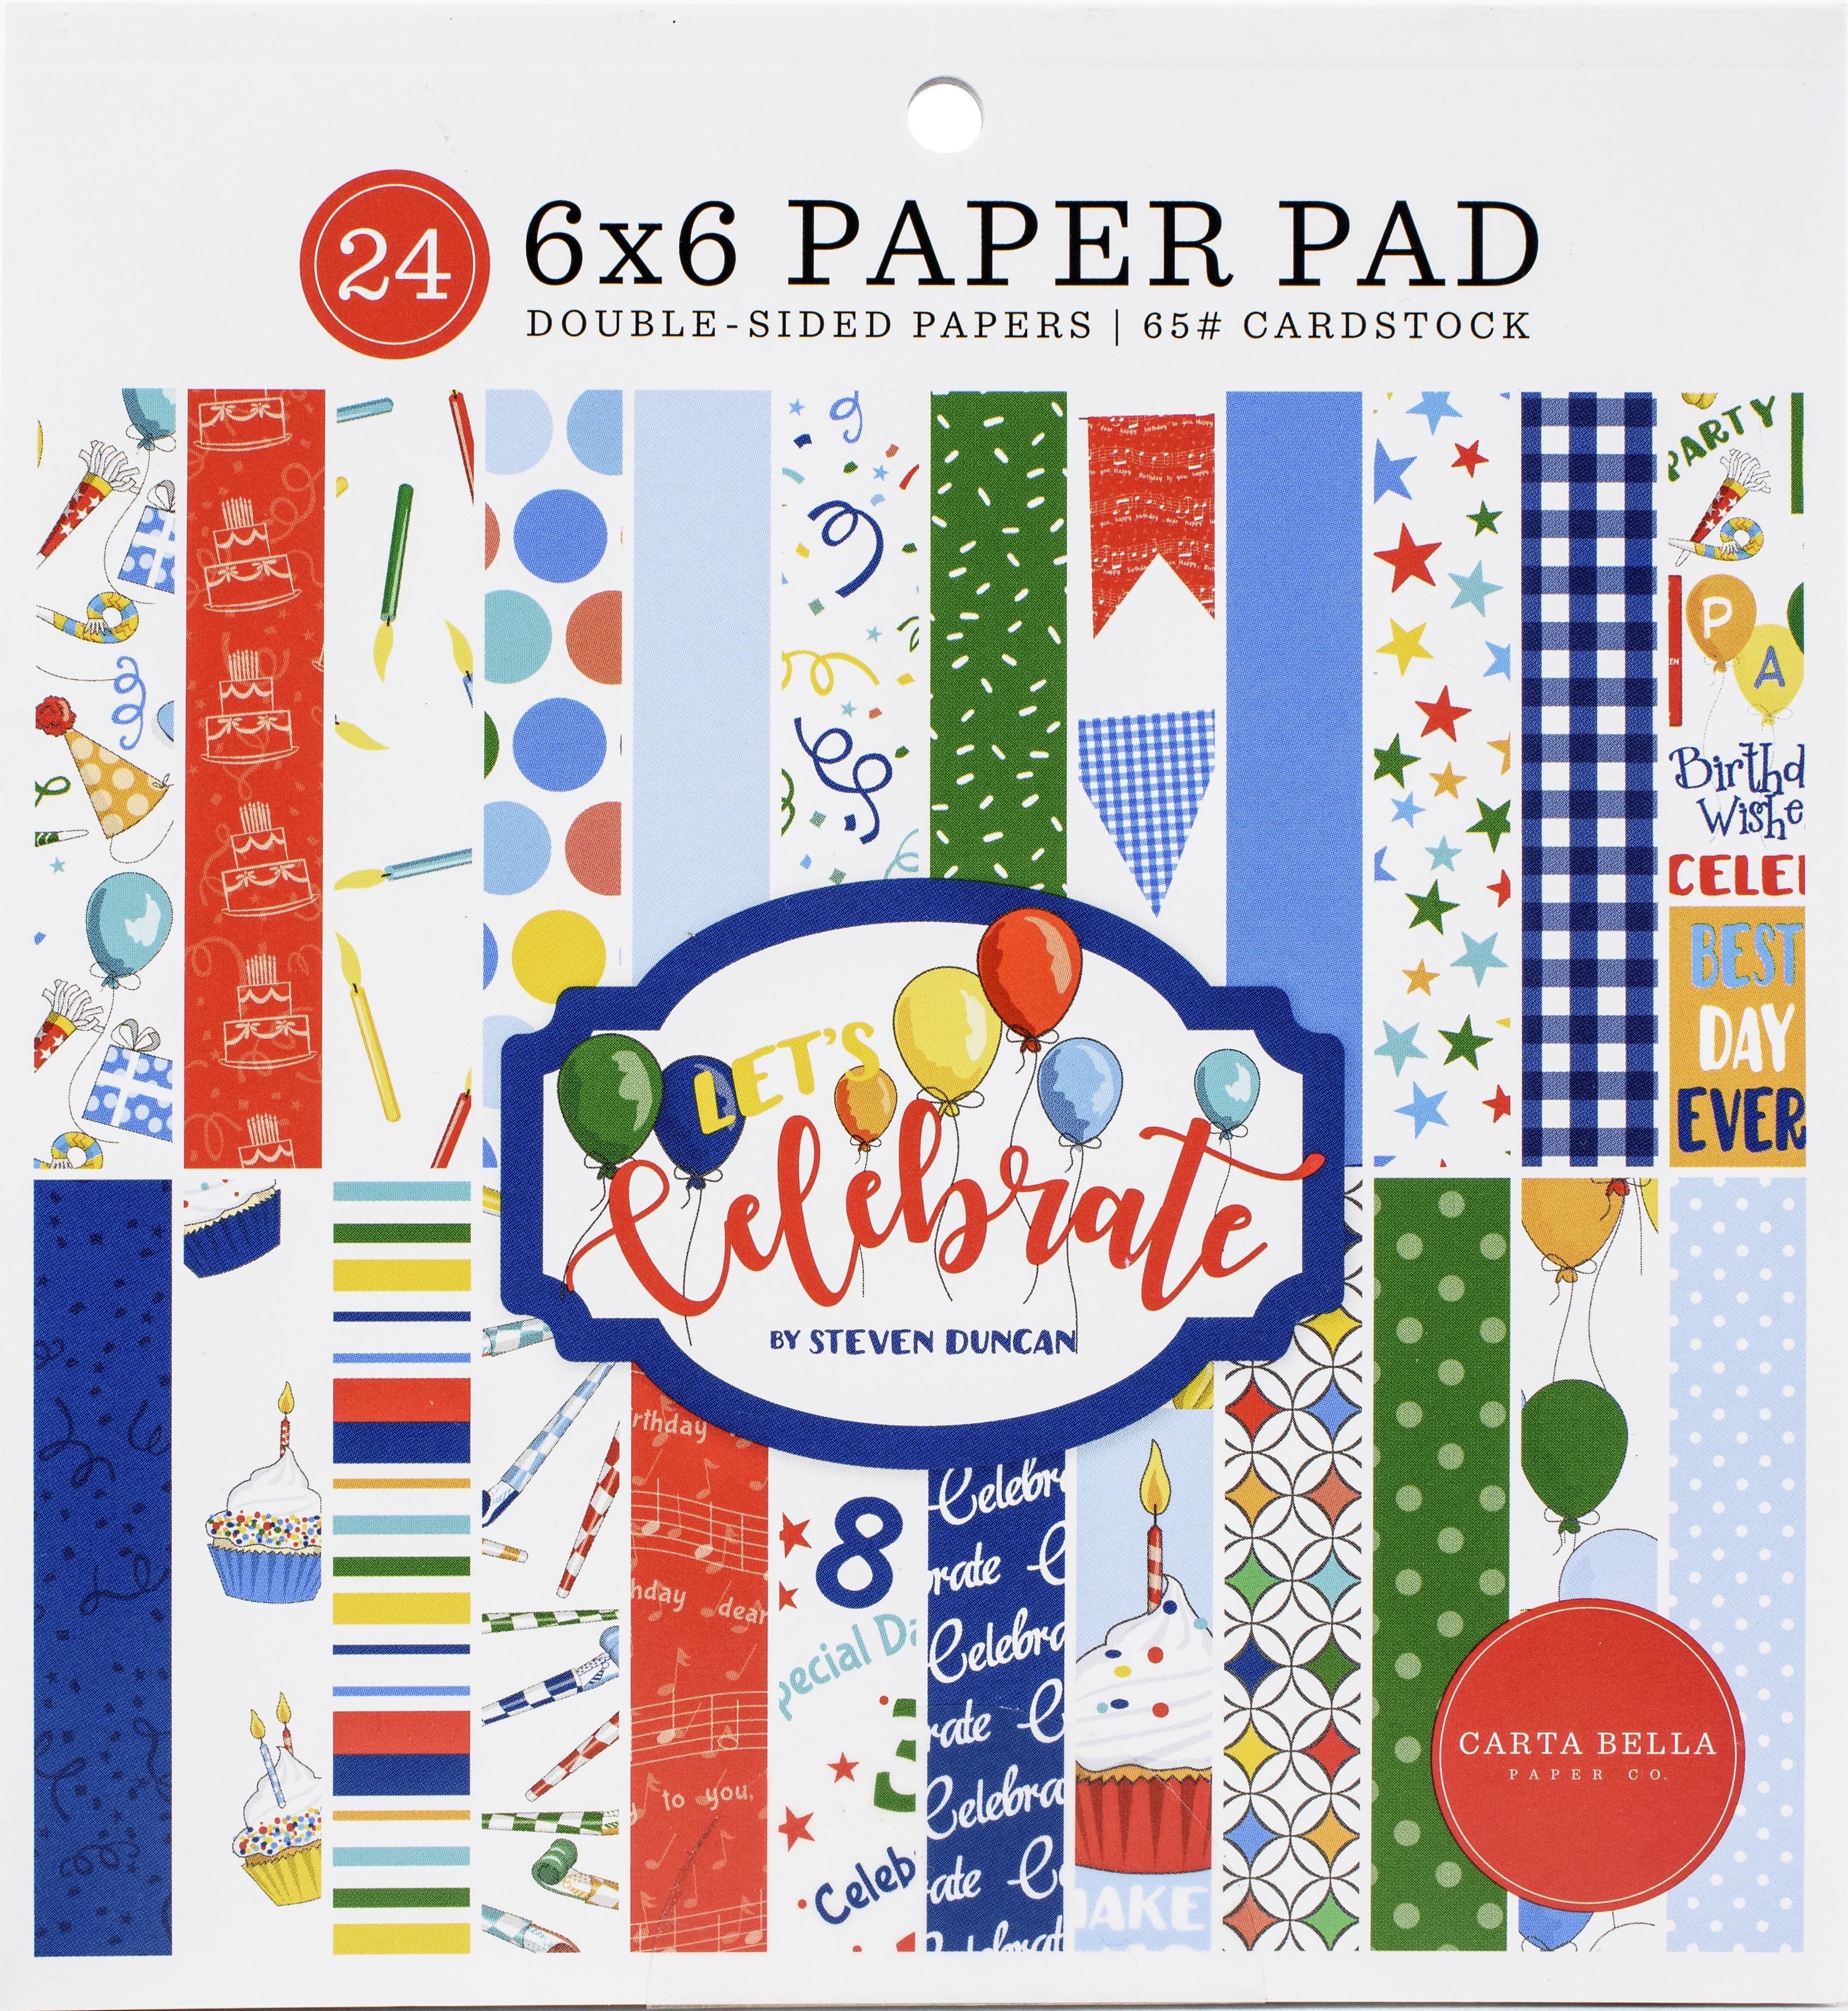 Carta Bella Let's Celebrate Double-Sided Paper Pad 6x6